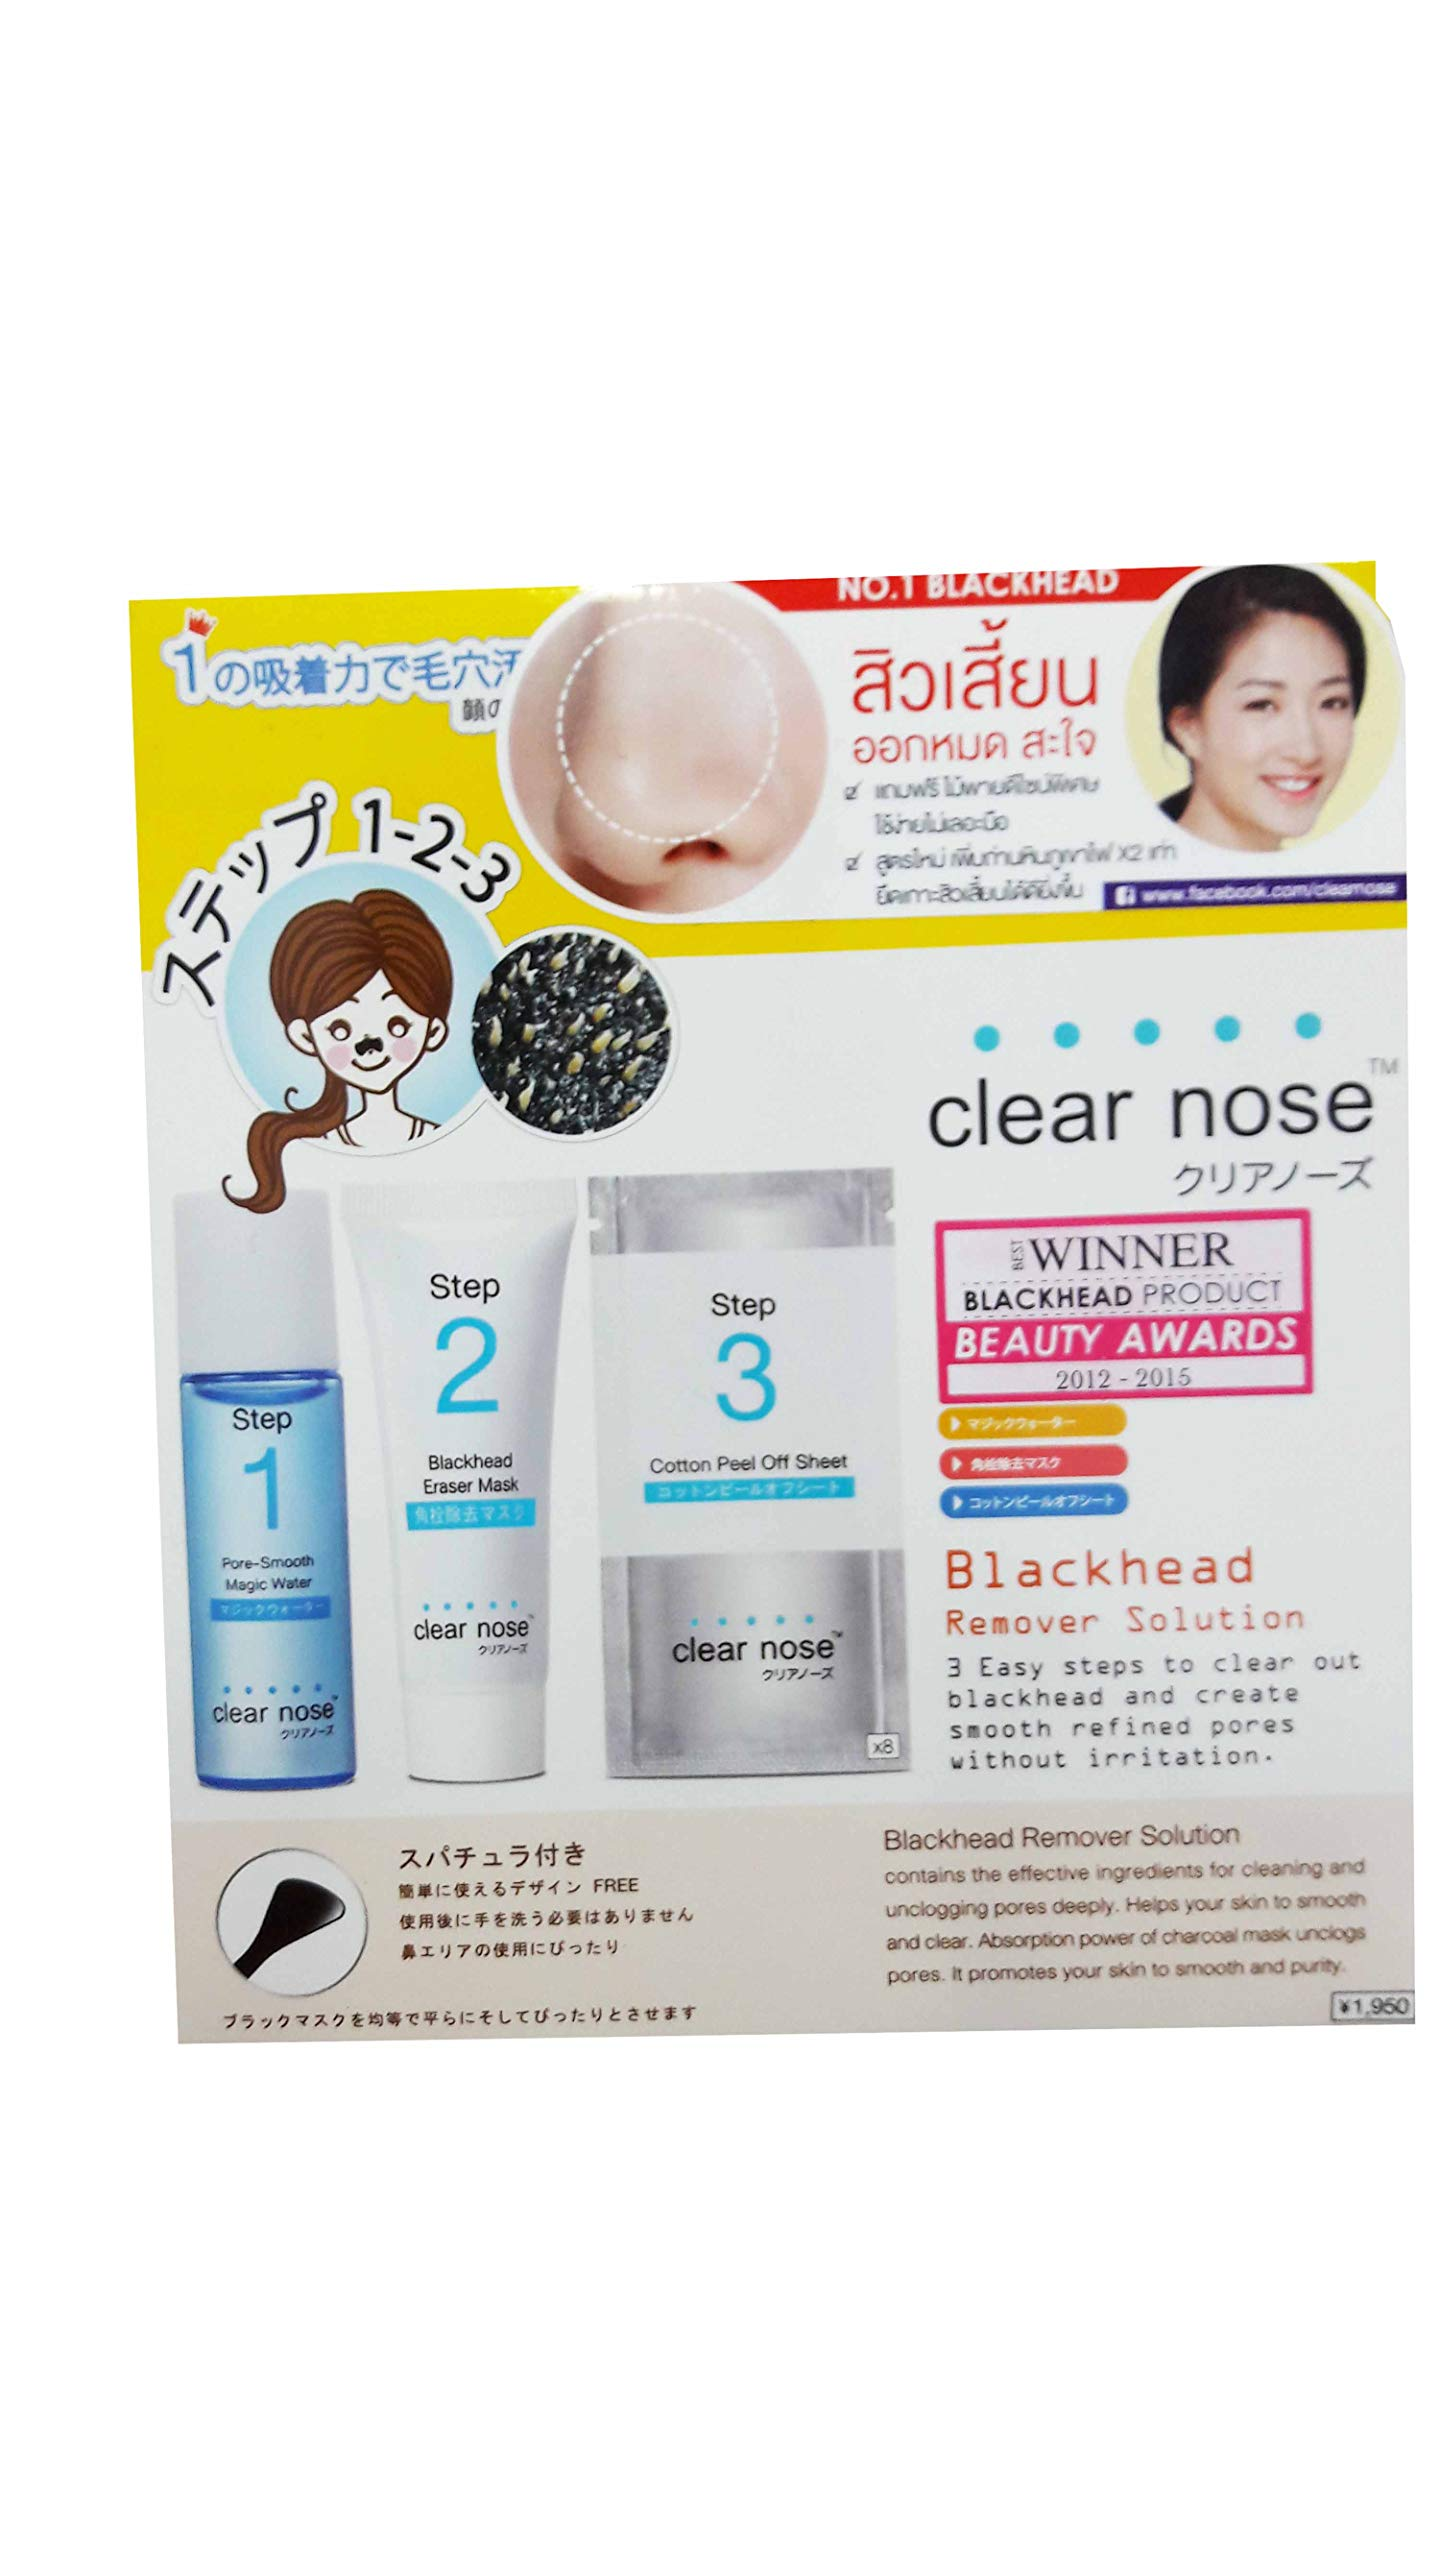 2 packs of clear nose set: blackhead remover solution, 3 easy steps to clear out blackhead and create smooth refined pores without irritation.